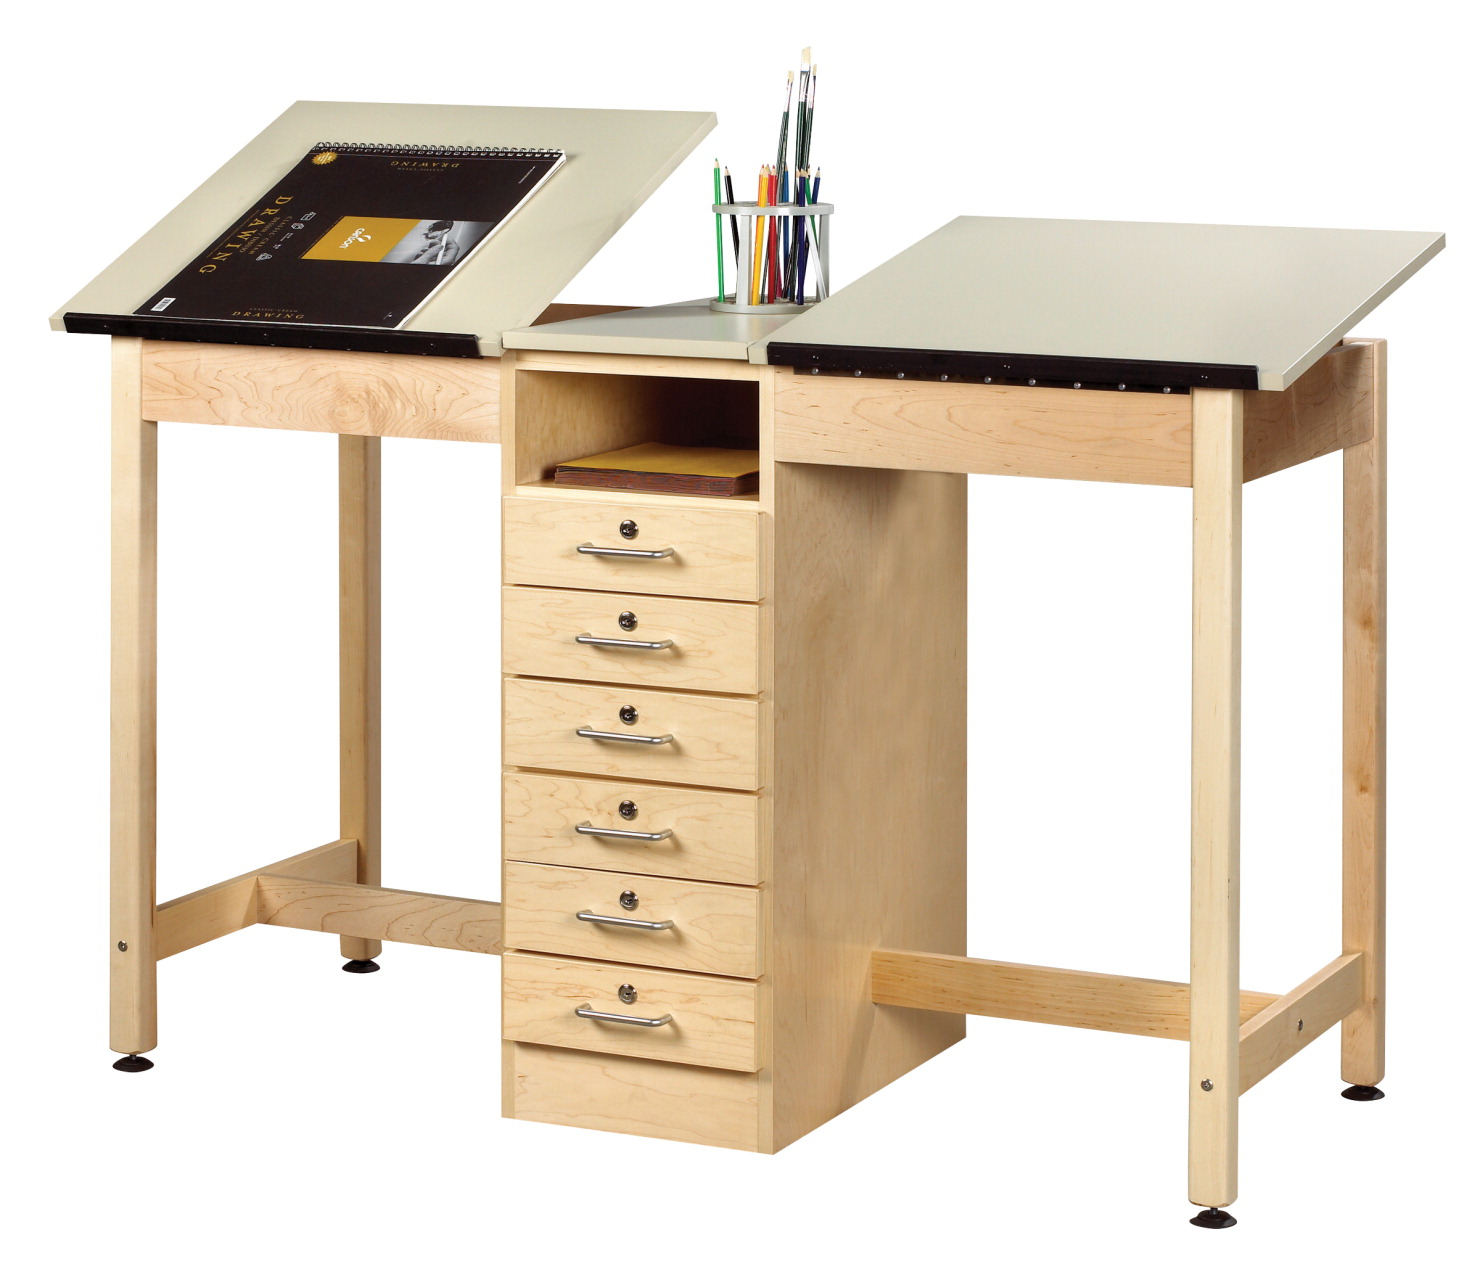 Diversified Woodcrafts 2 Station Drawing Table With Drawers 60 X 24 36 Inches